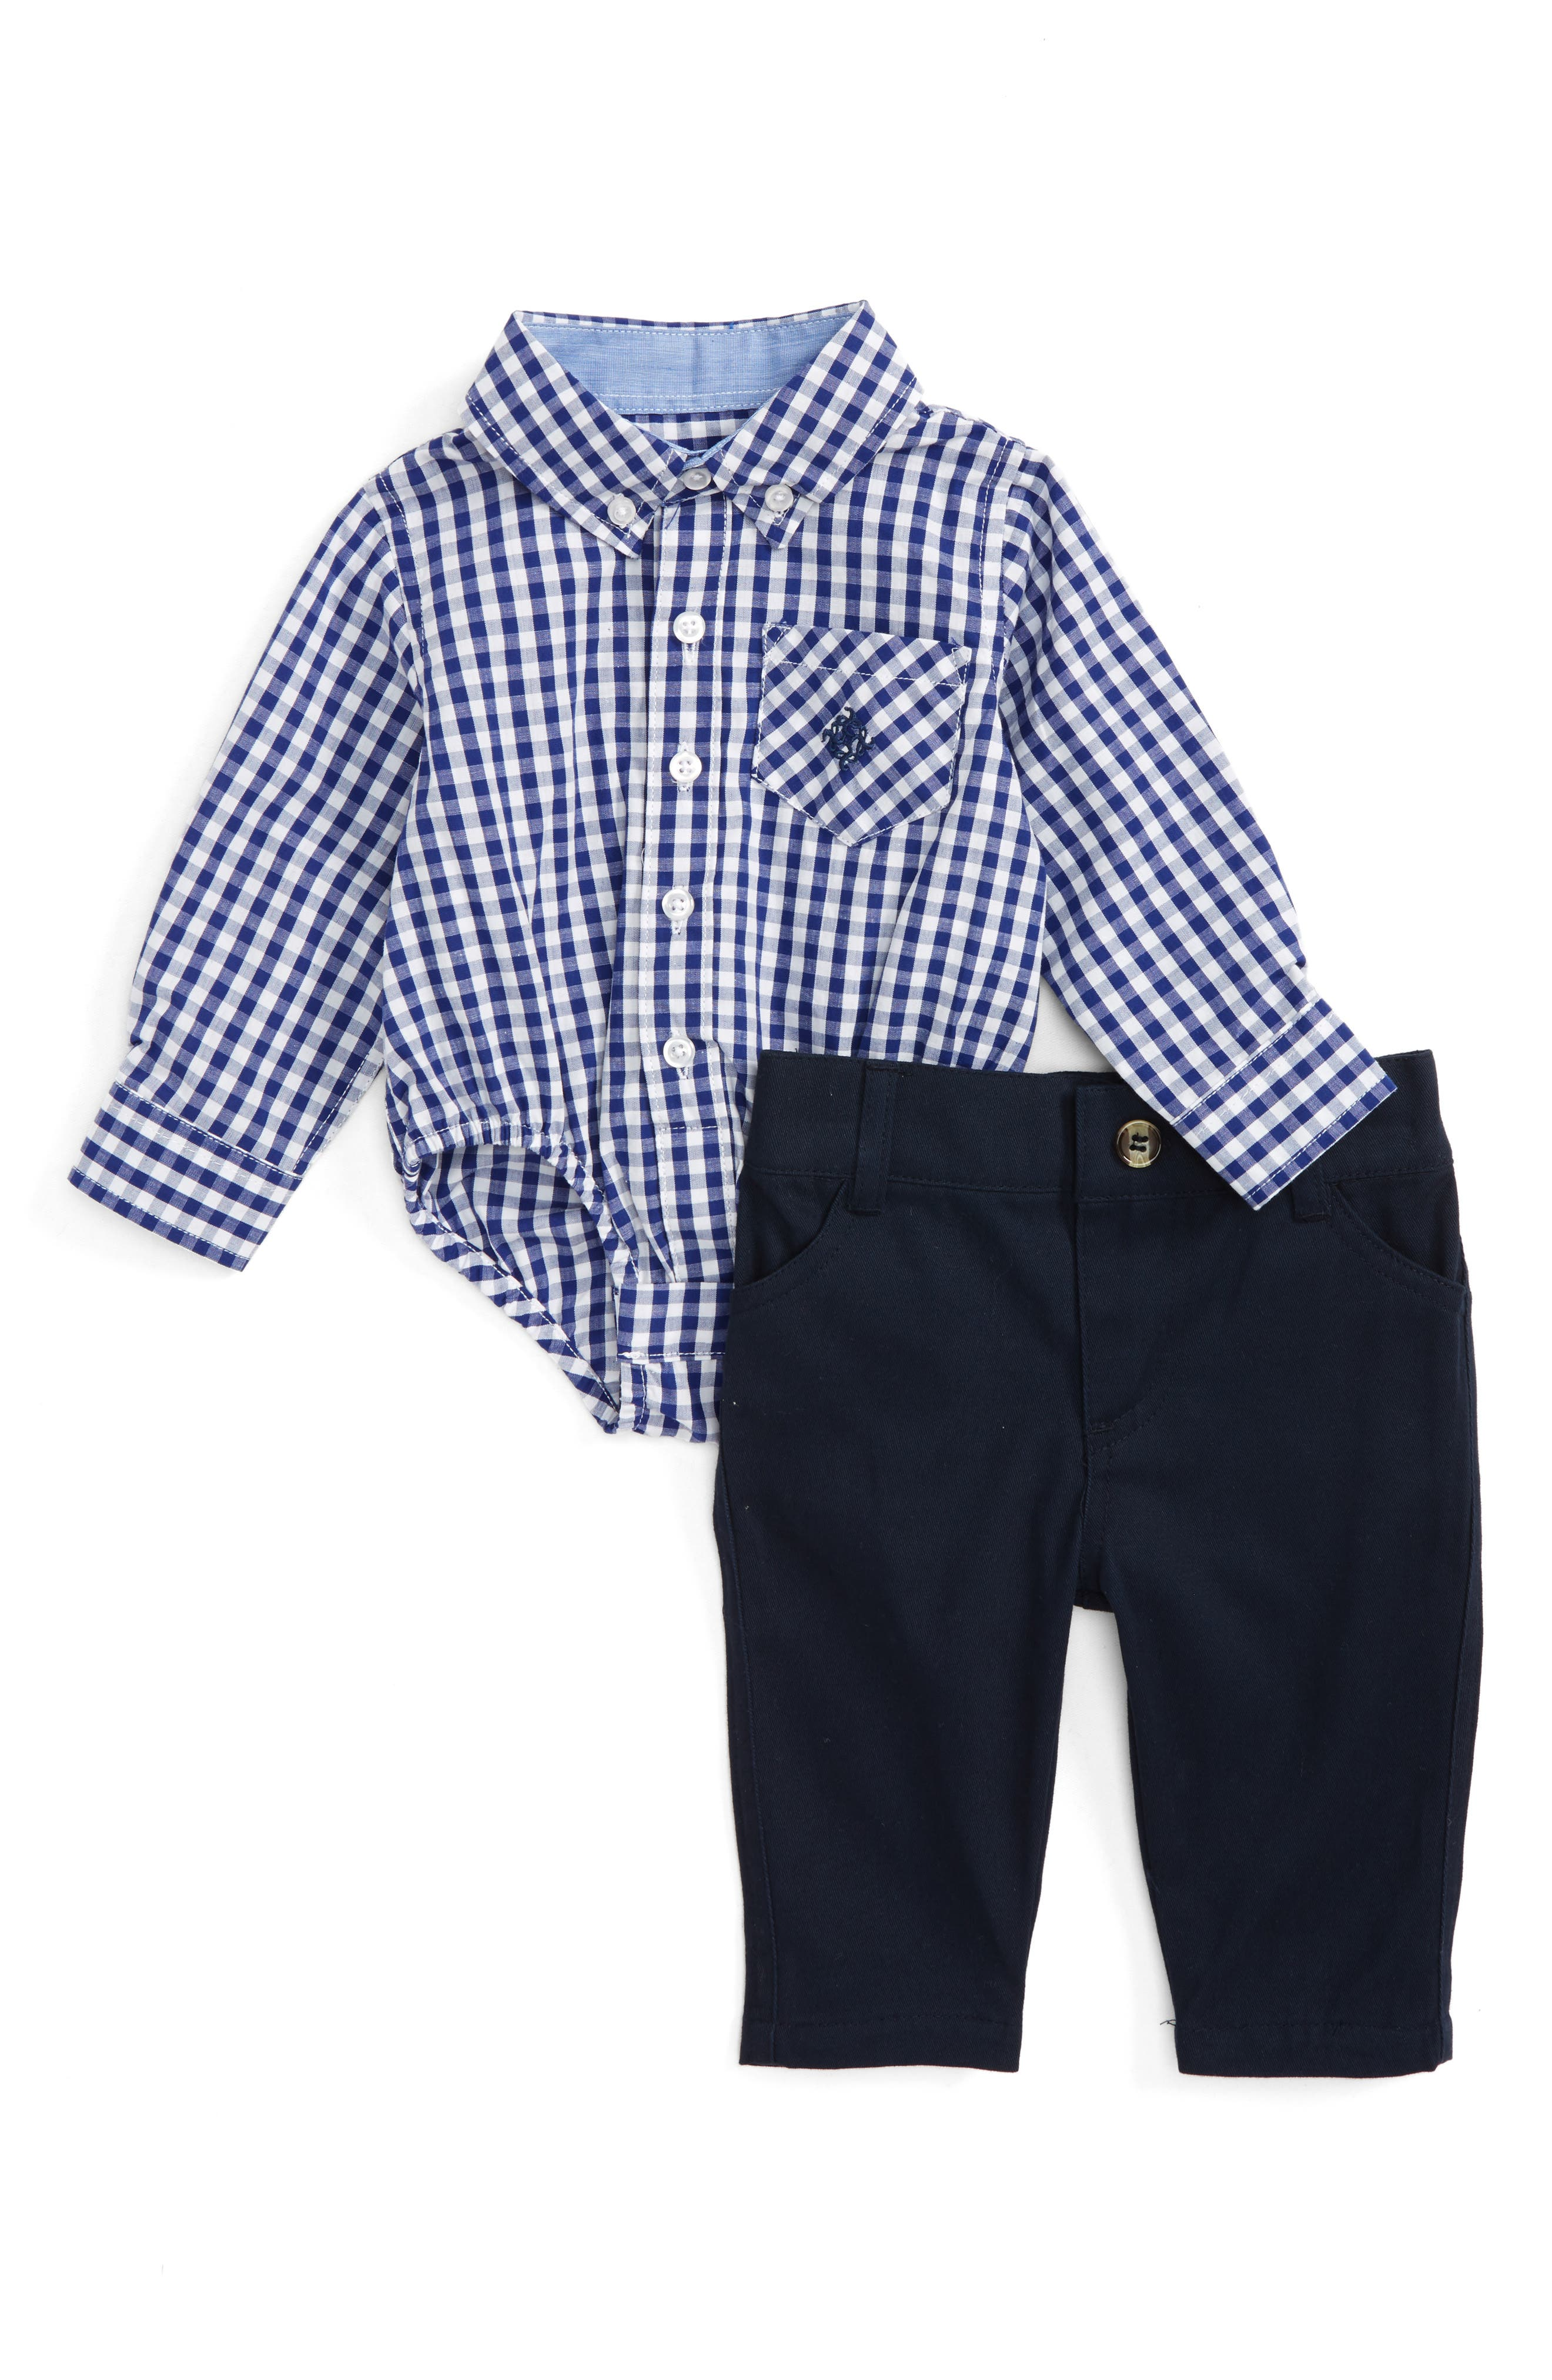 Main Image - Andy & Evan Shirtzie Gingham Bodysuit & Pants Set (Baby Boys)